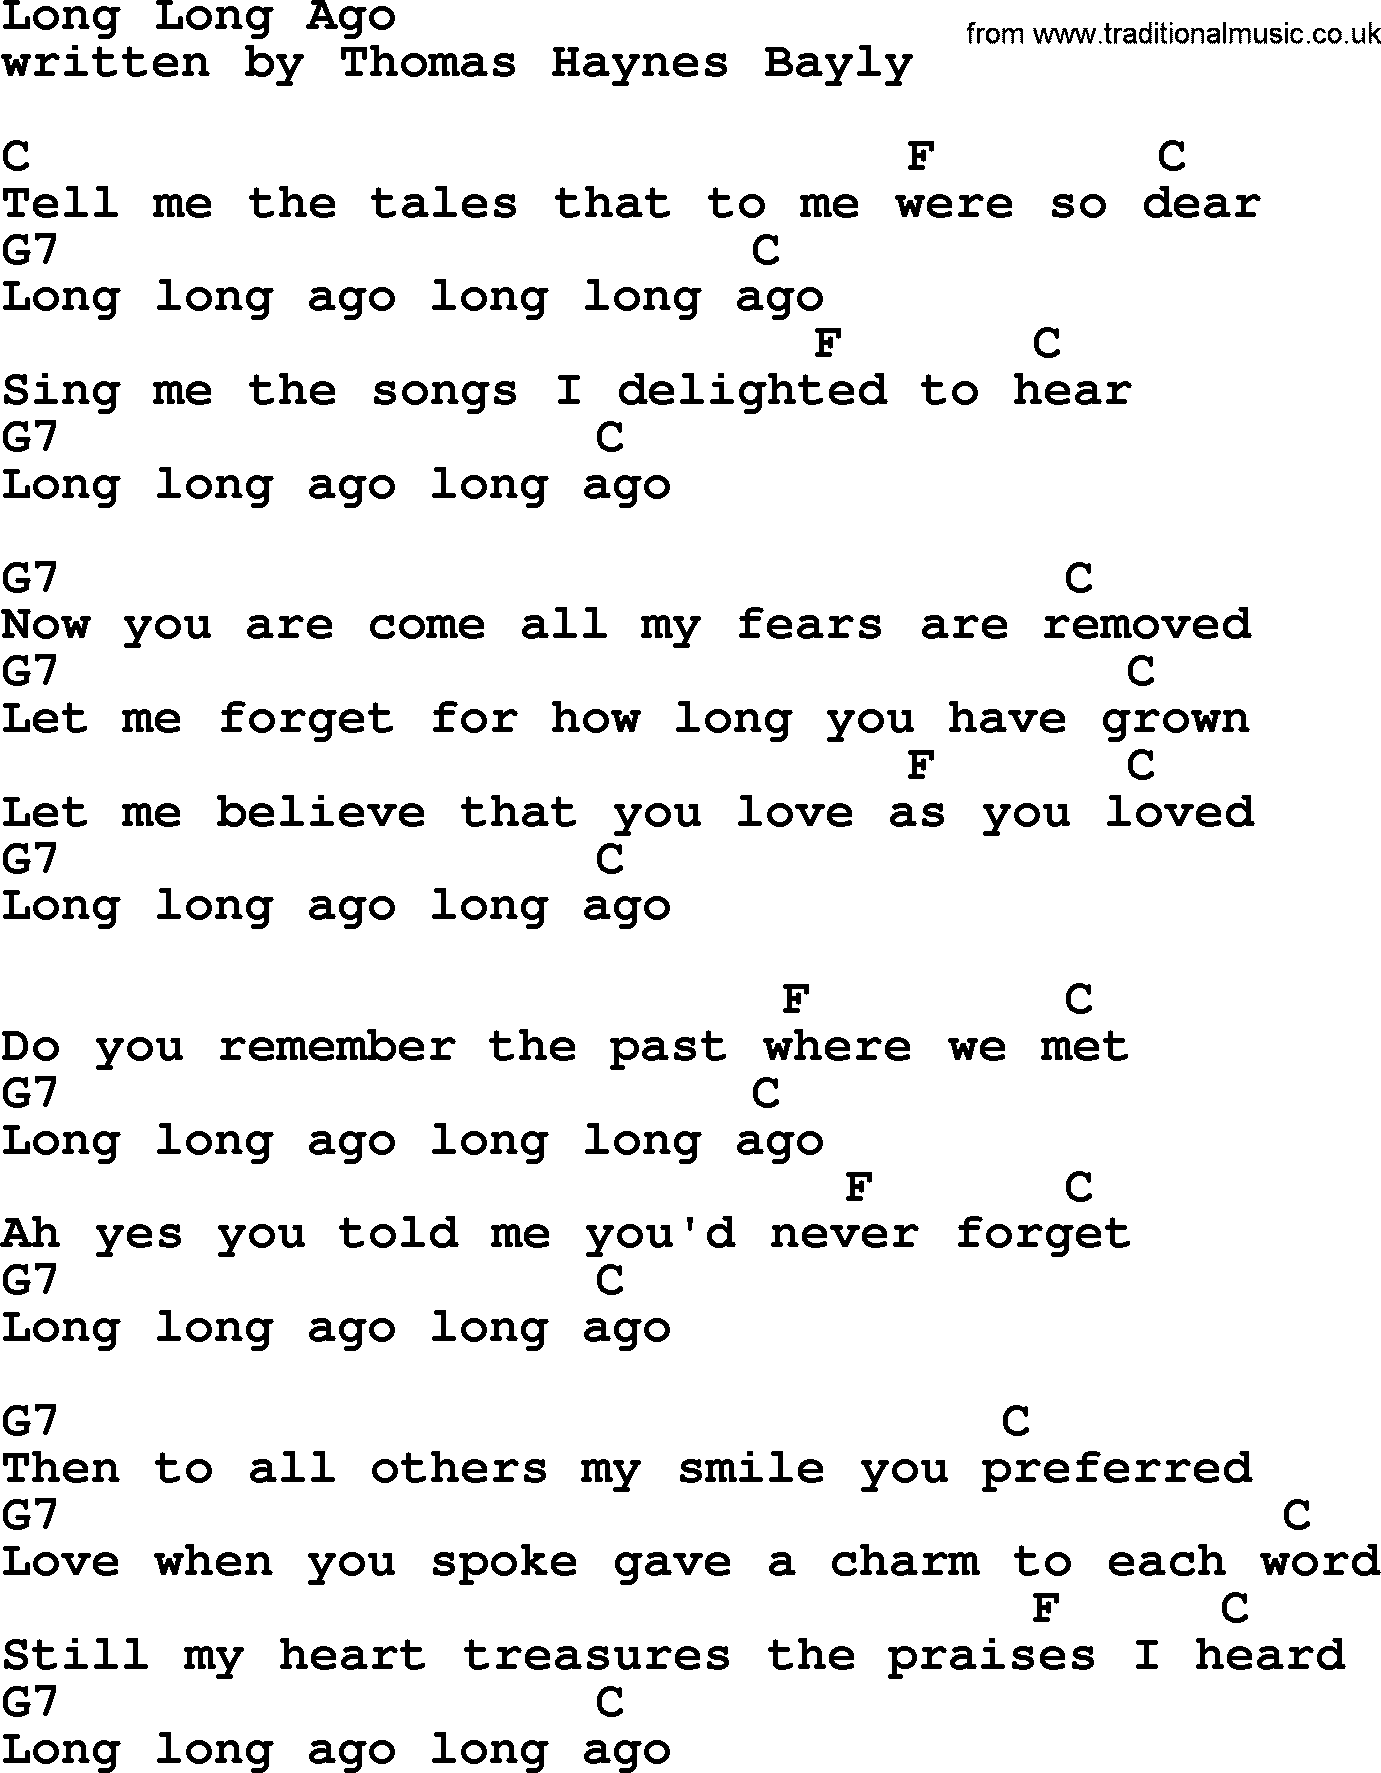 Long long ago by marty robbins lyrics and chords marty robbins song long long ago lyrics and chords hexwebz Images